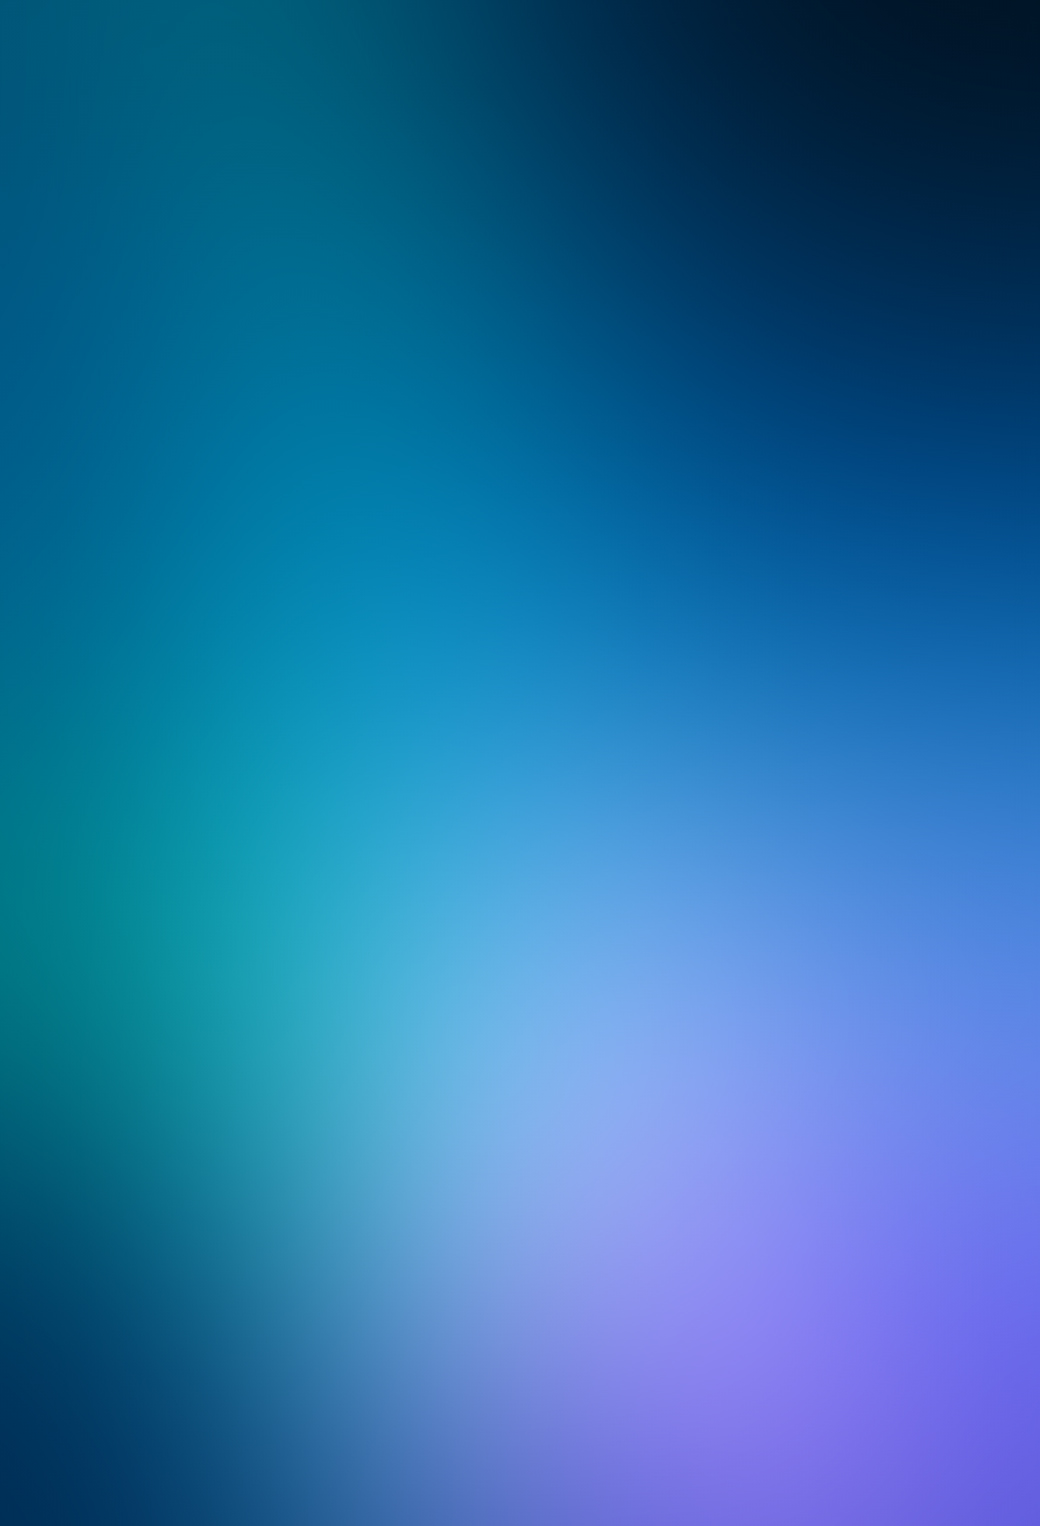 730x1071 20 parallax iOS 7 wallpapers for iPhone ready to download 1040x1526